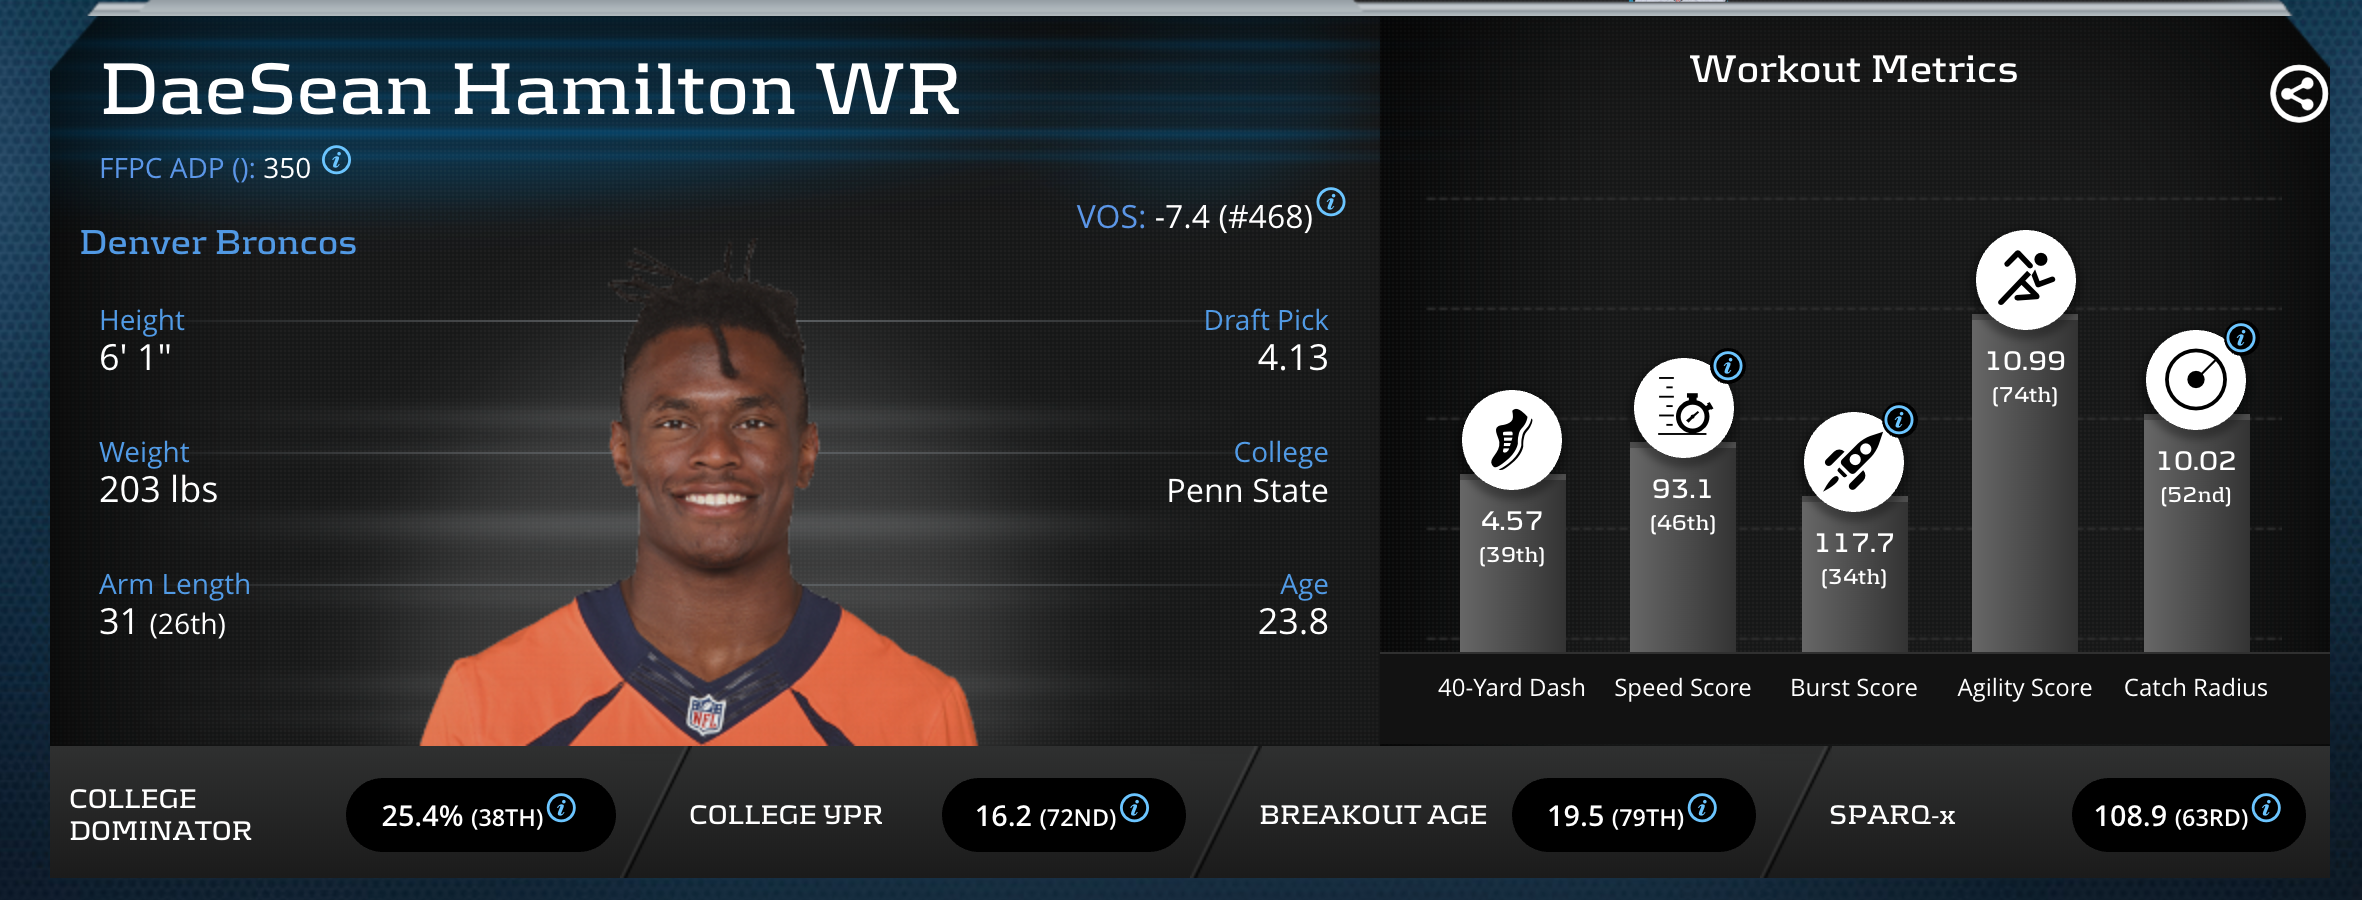 daesean hamilton fantasy football